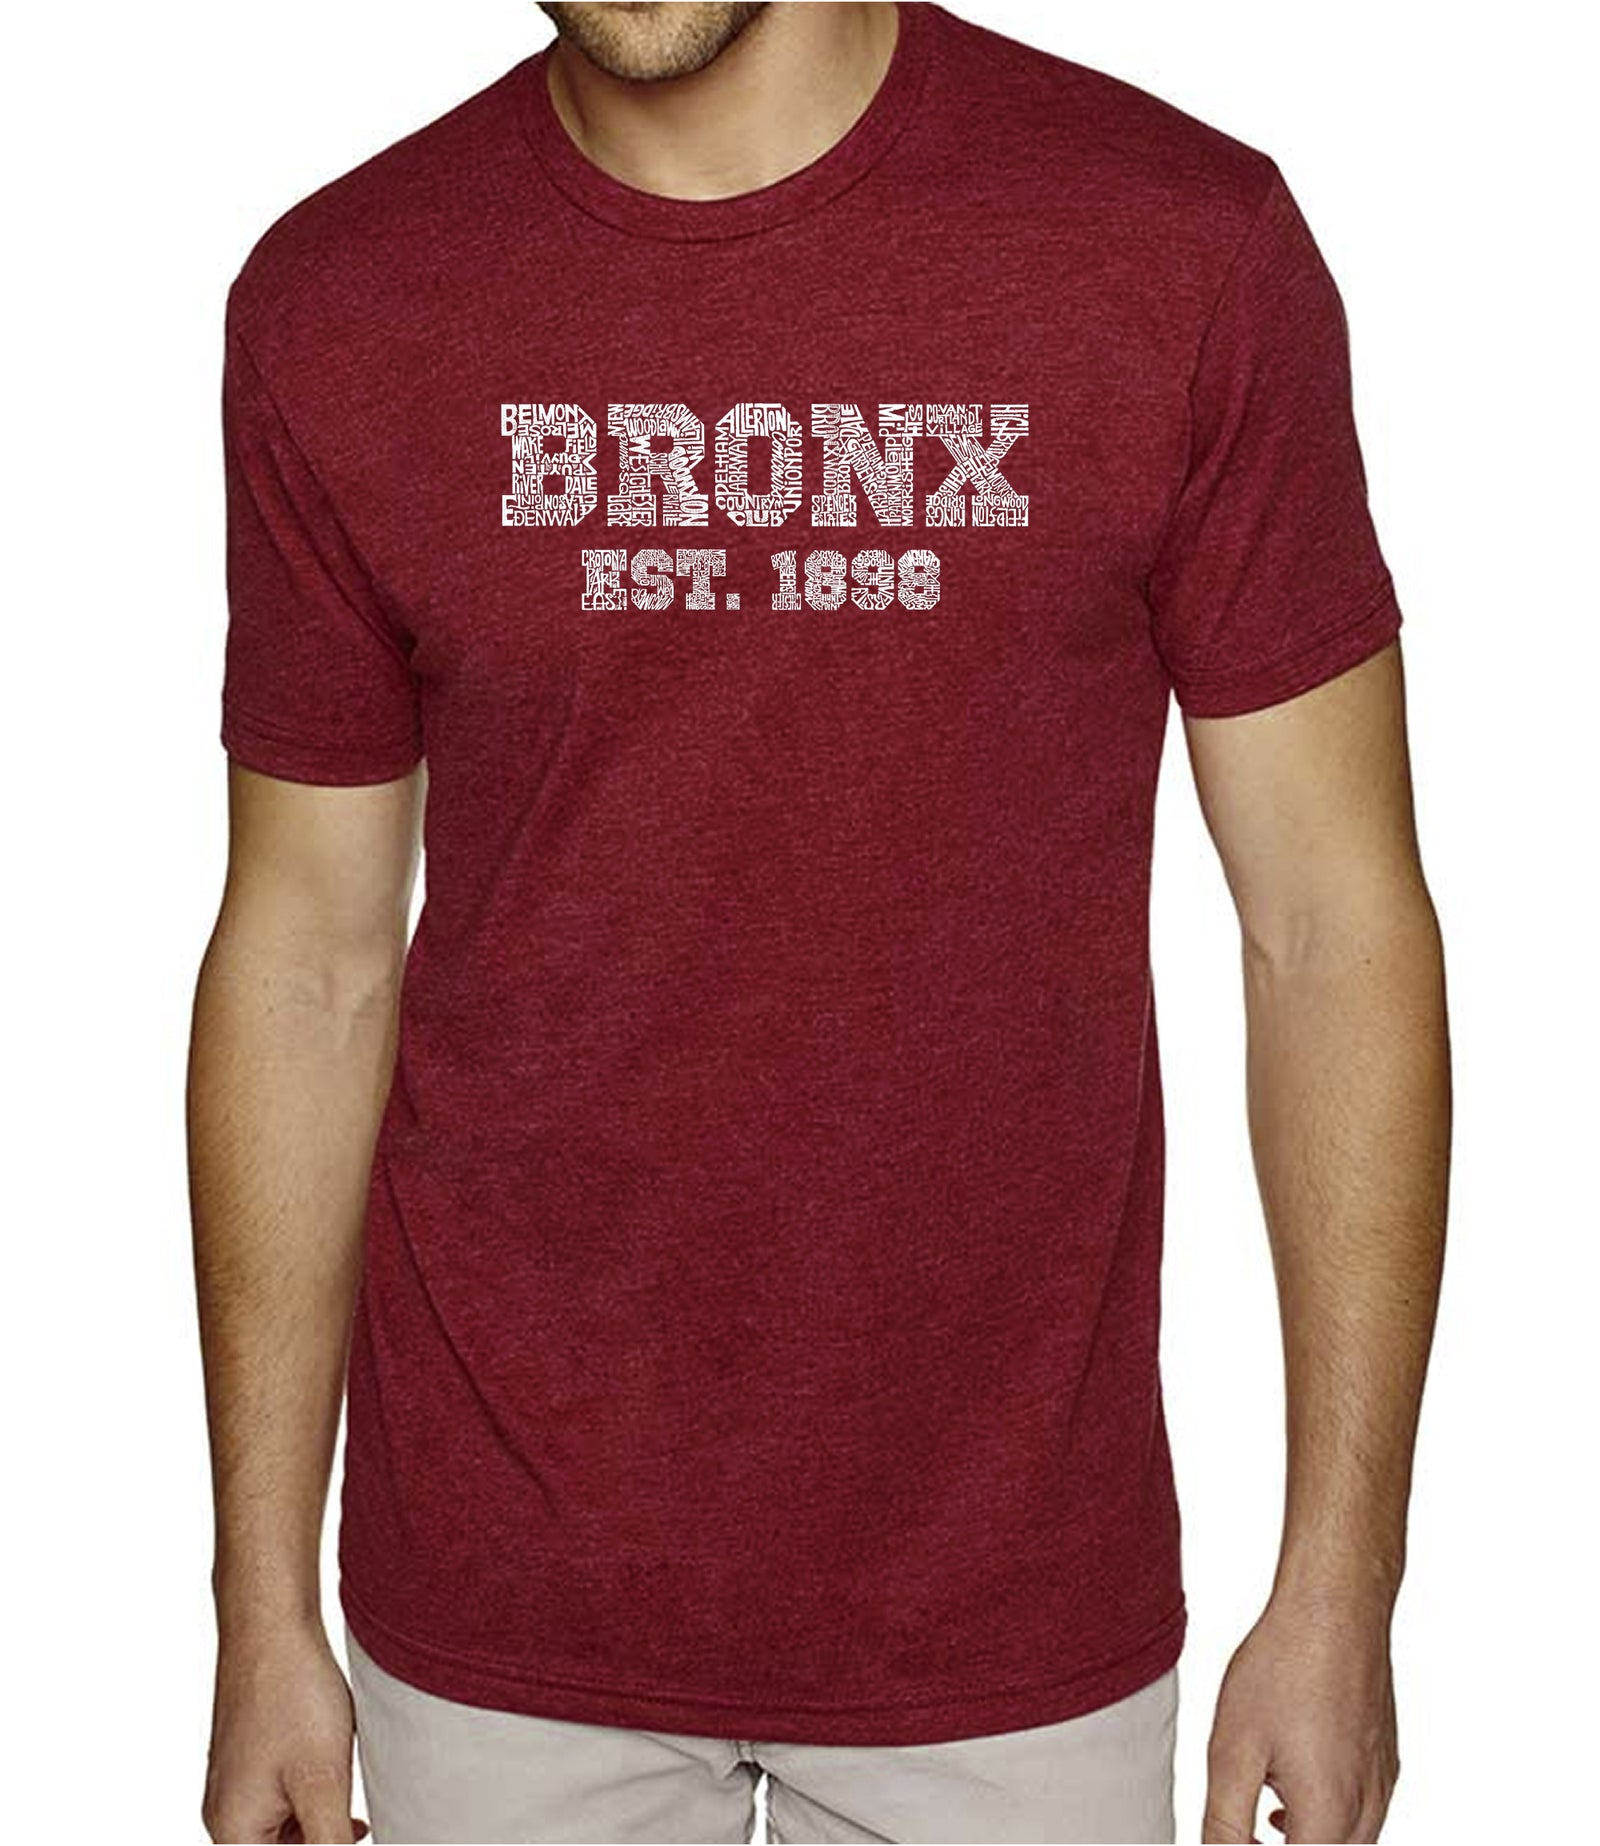 Men's Premium Blend Word Art T-shirt - POPULAR NEIGHBORHOODS IN BRONX, NY